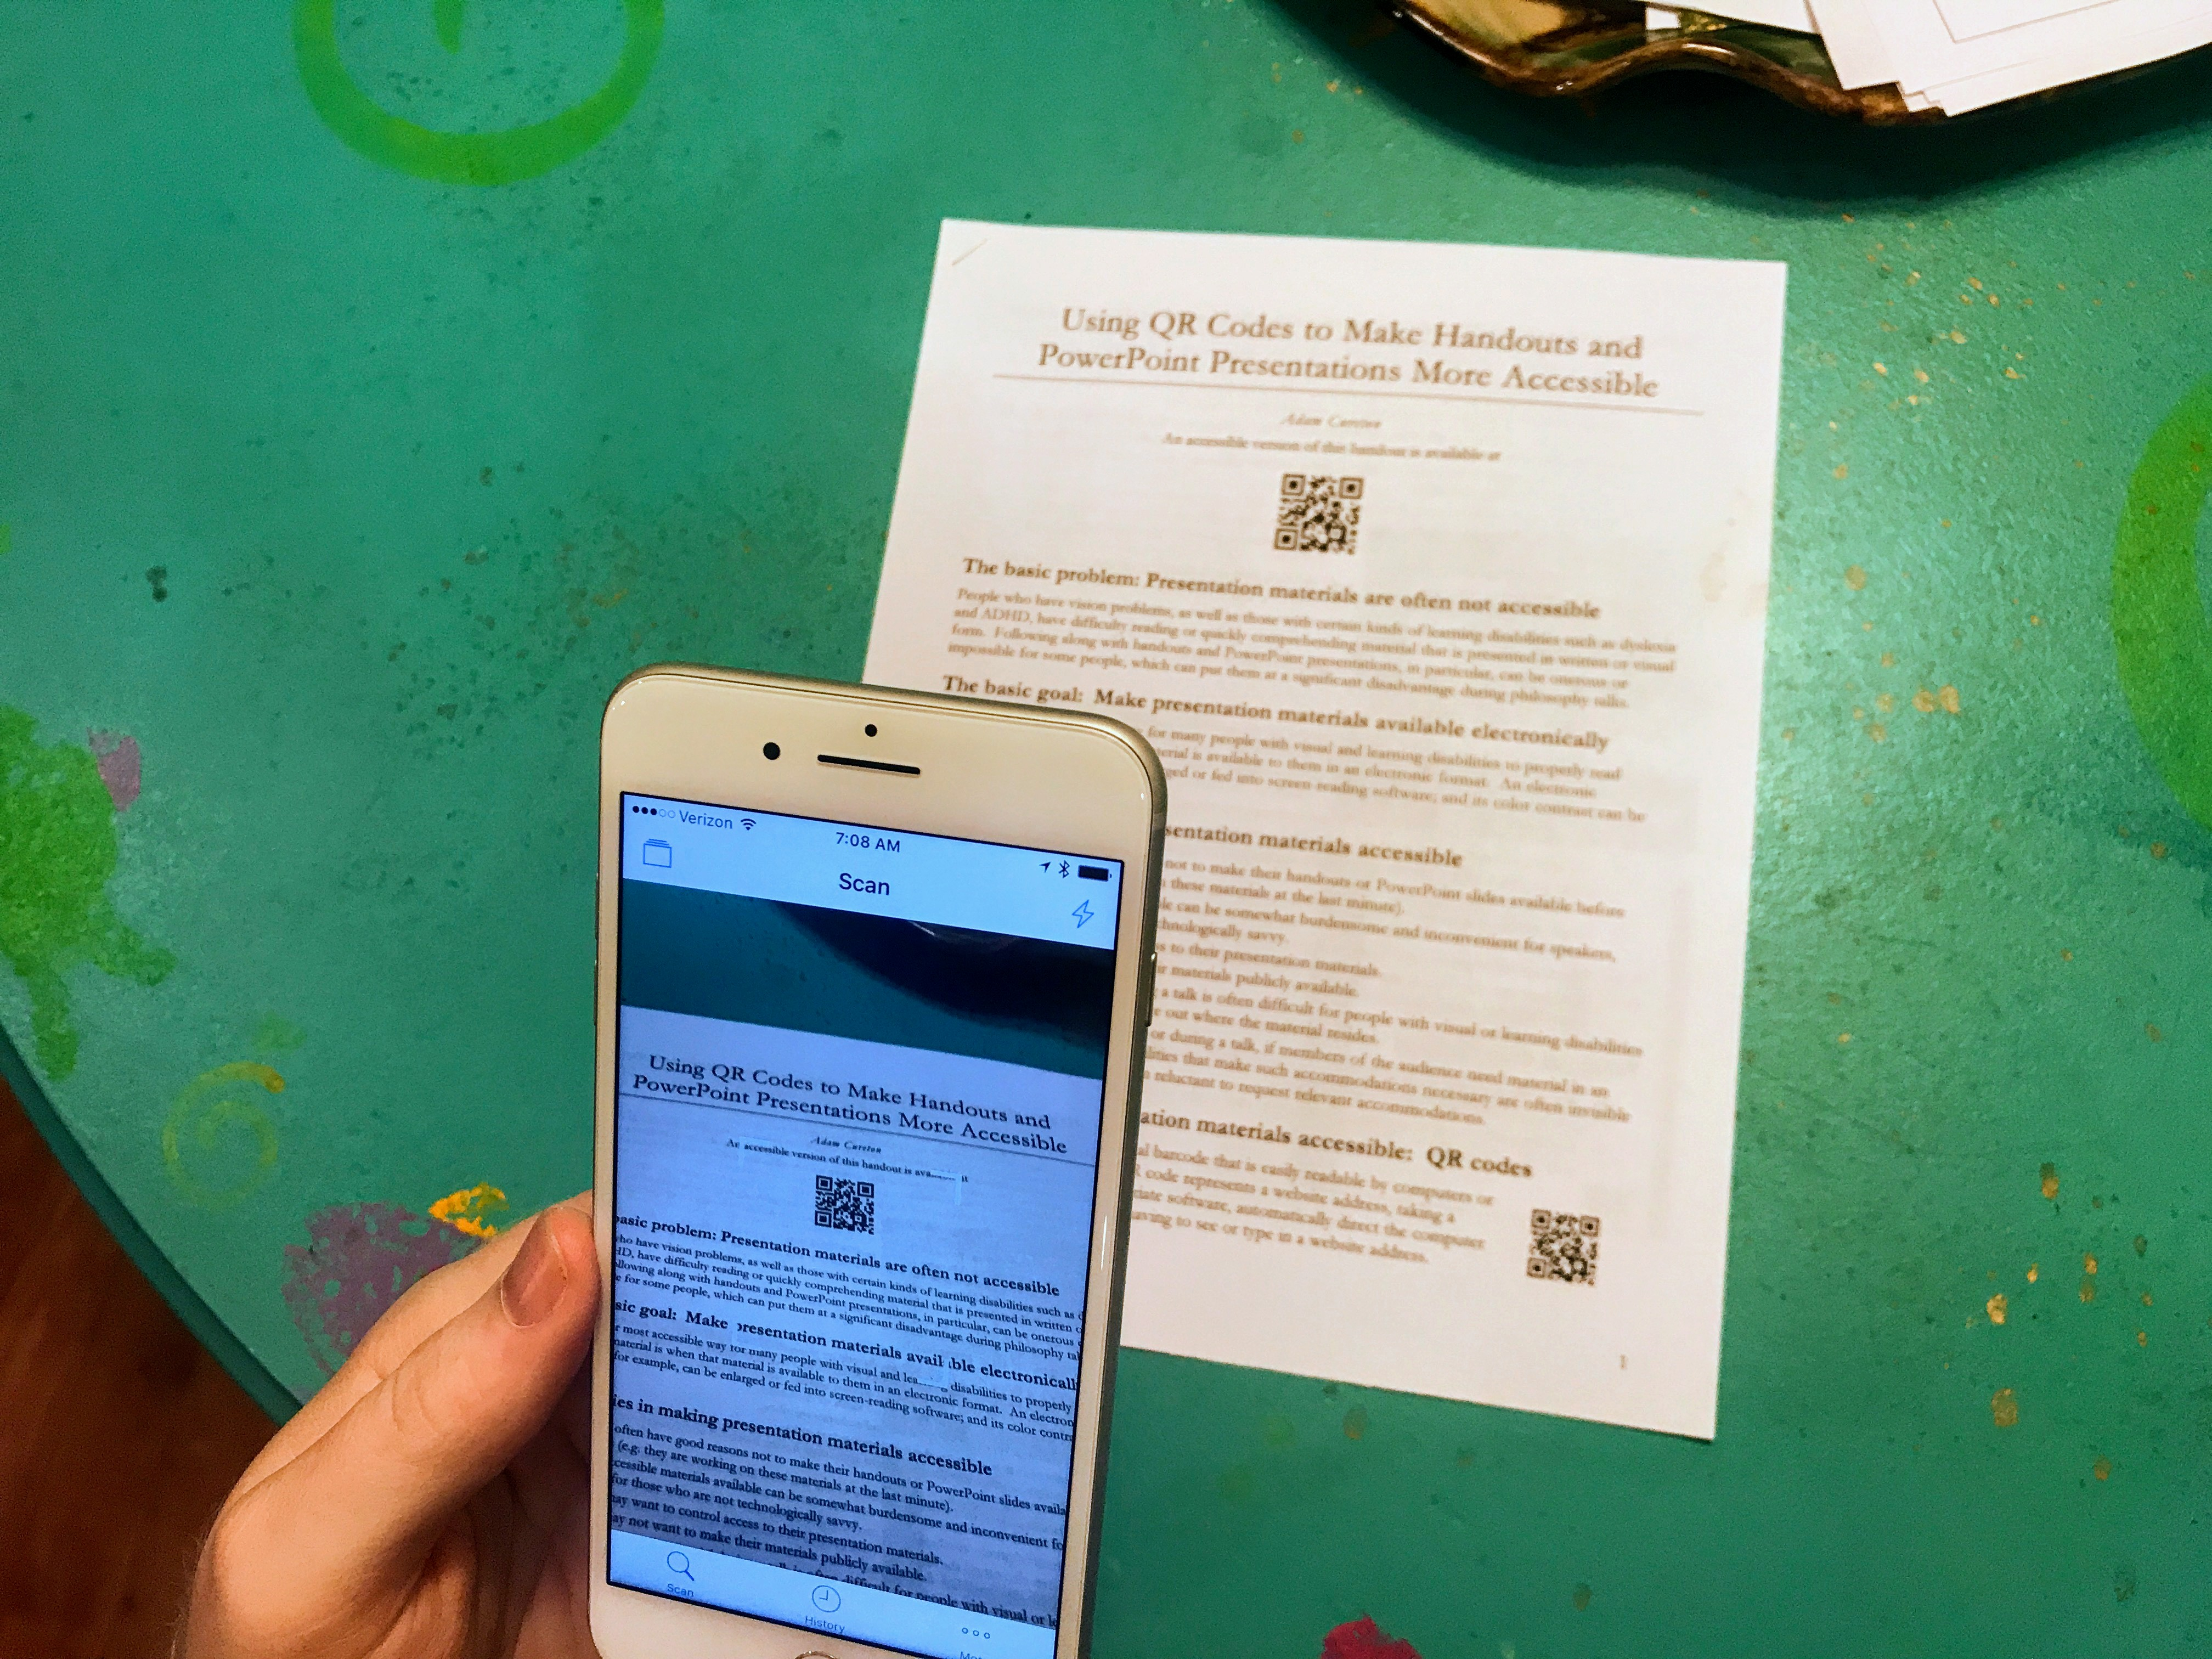 Using QR Codes to Make Presentation Materials More Accessible